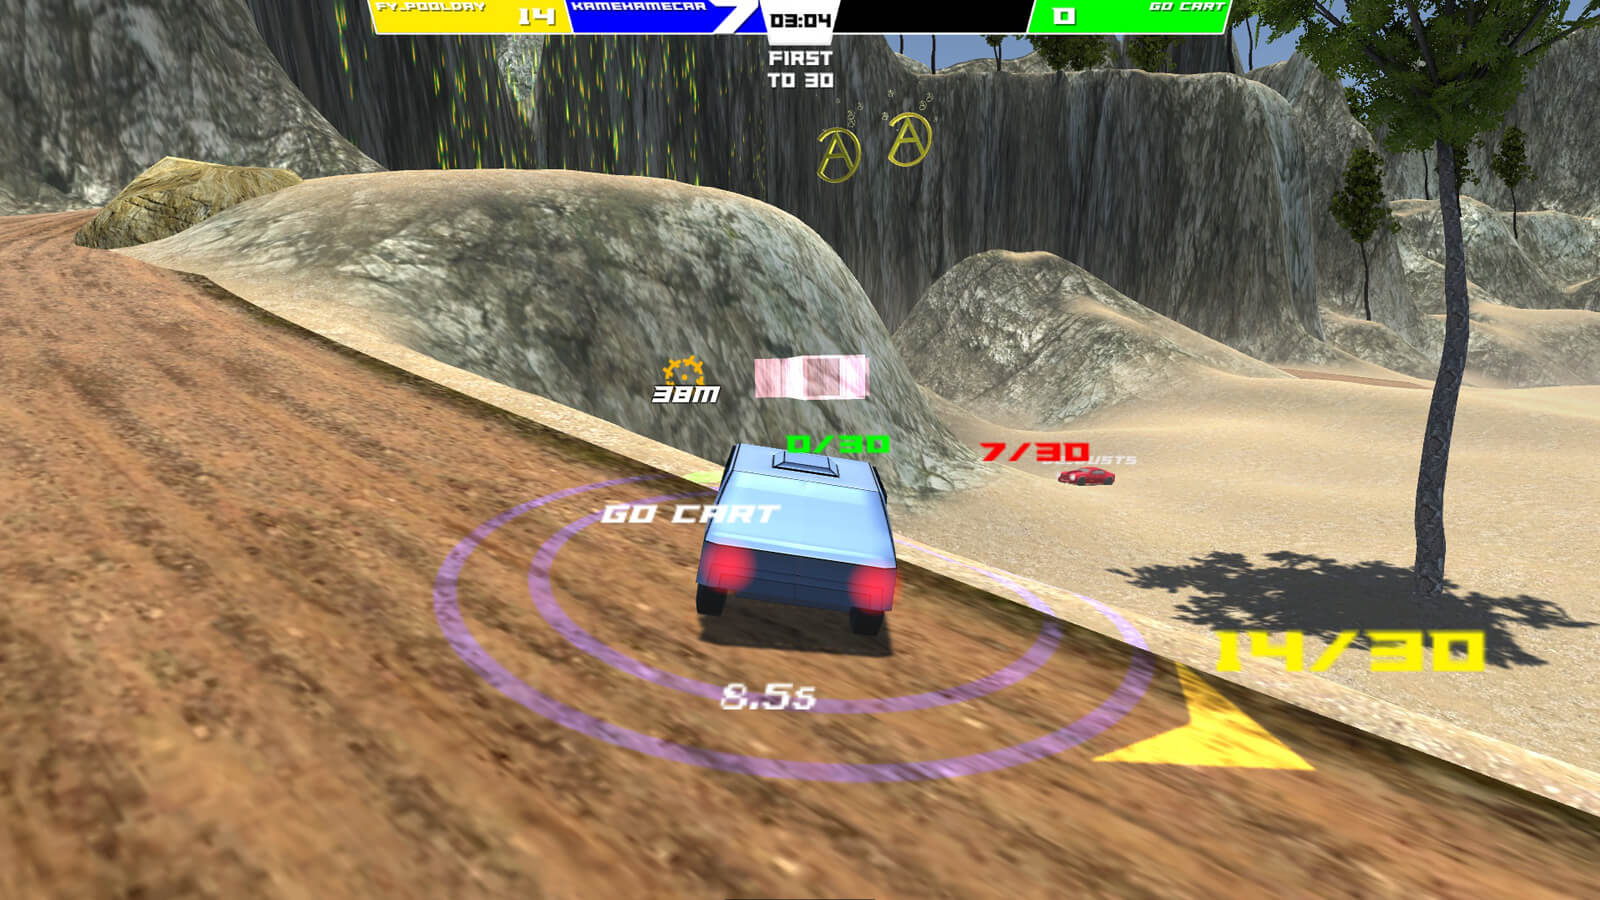 A blue car surrounded by several vital statistics in a HUD about to careen off the road